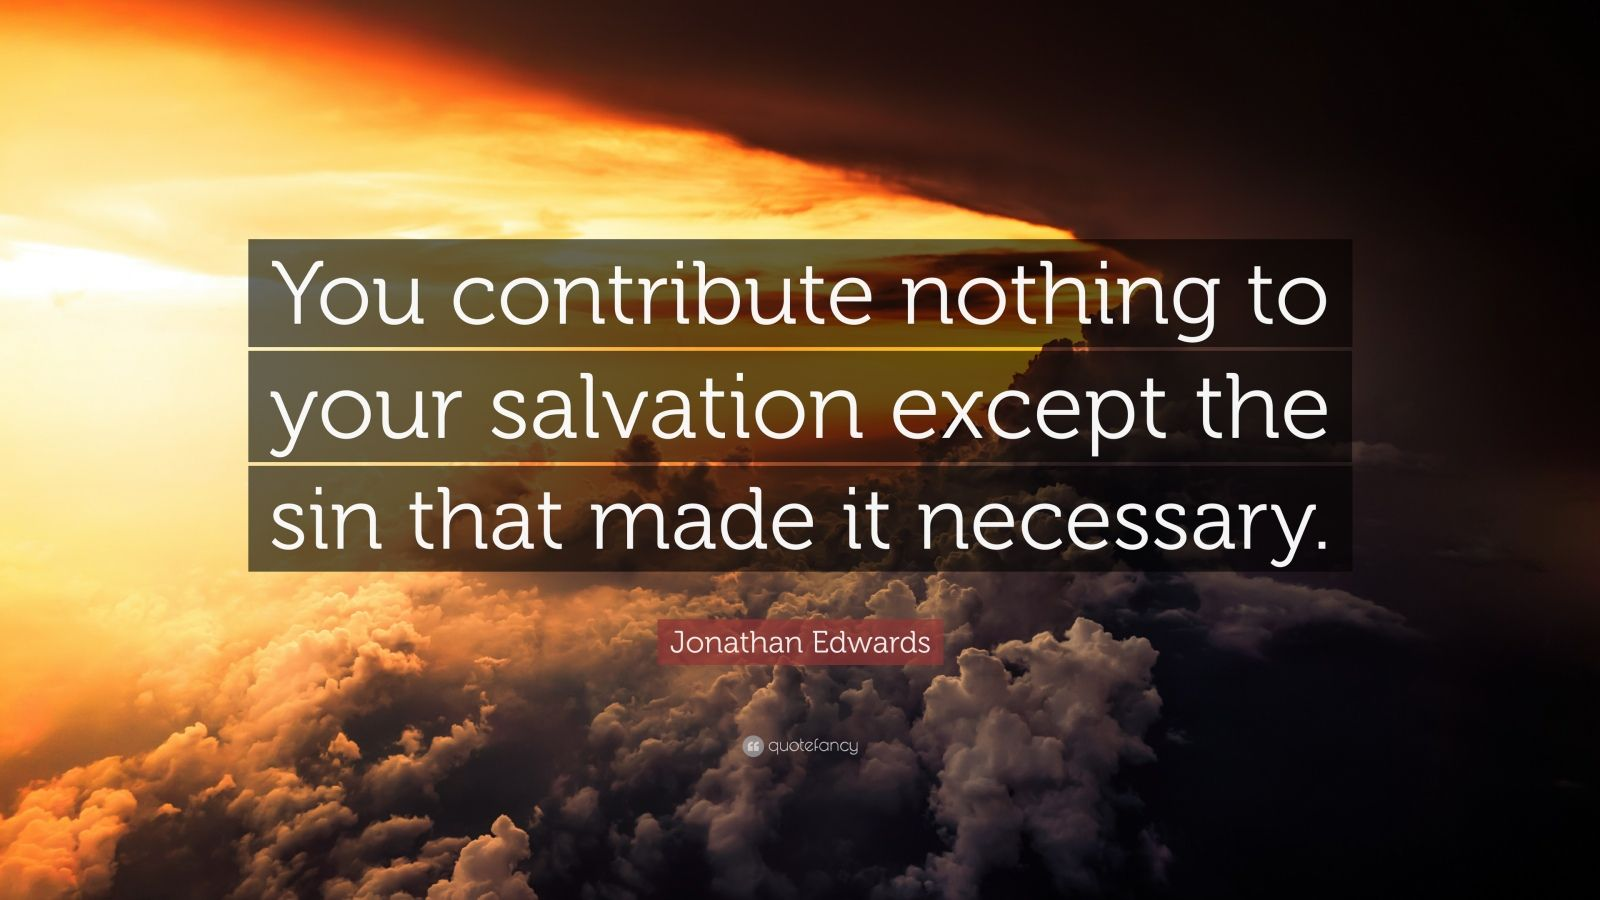 jonathan edwards quote �you contribute nothing to your